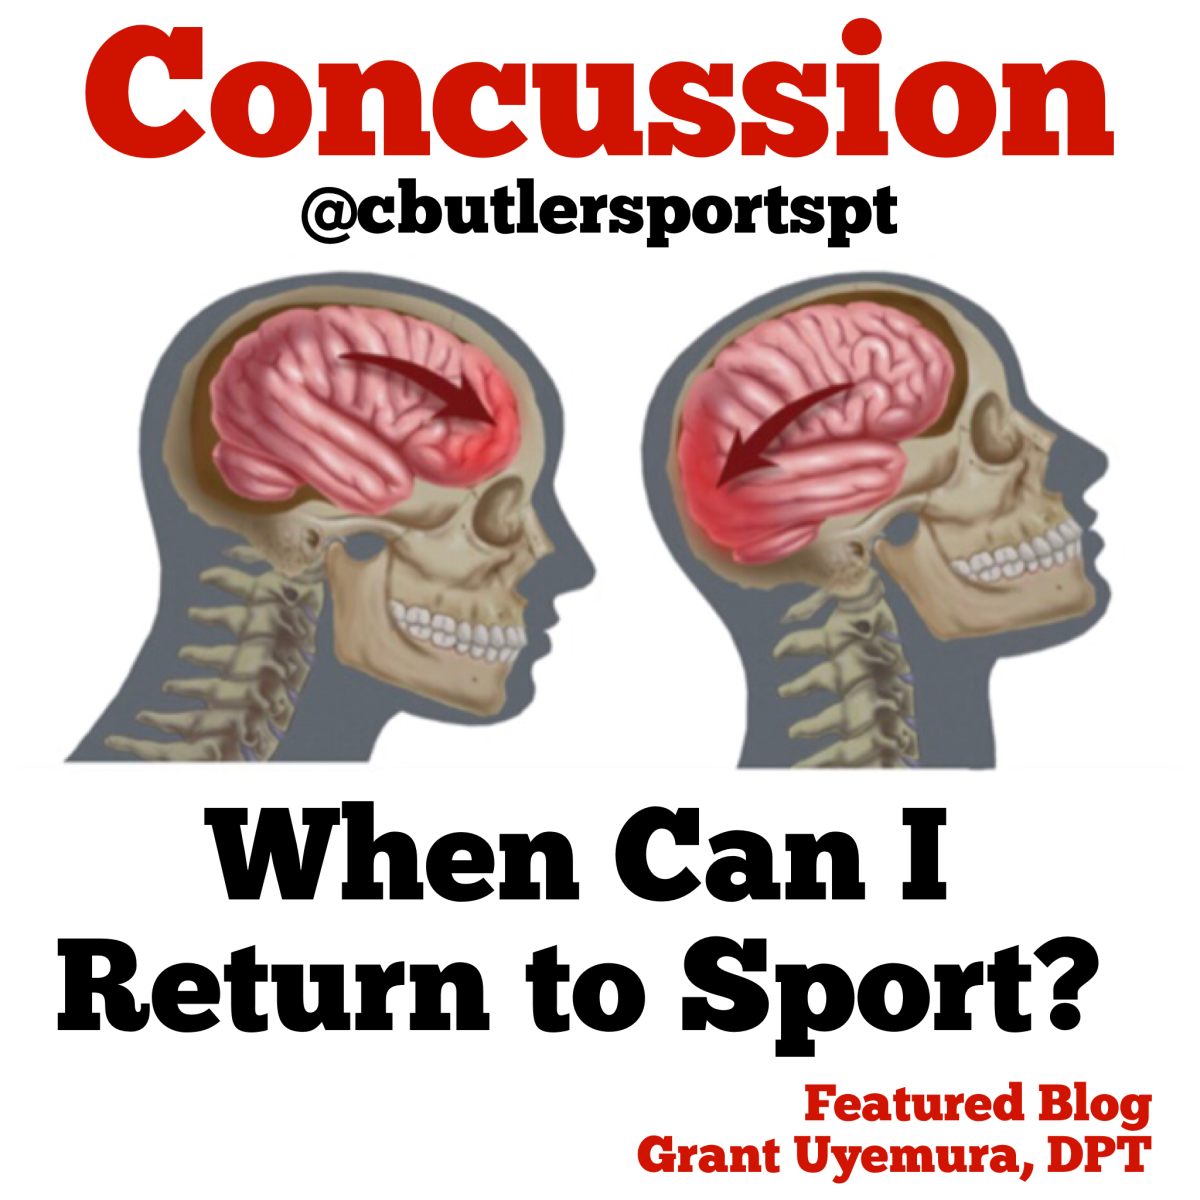 Concussion: When Can I Return to Sport?